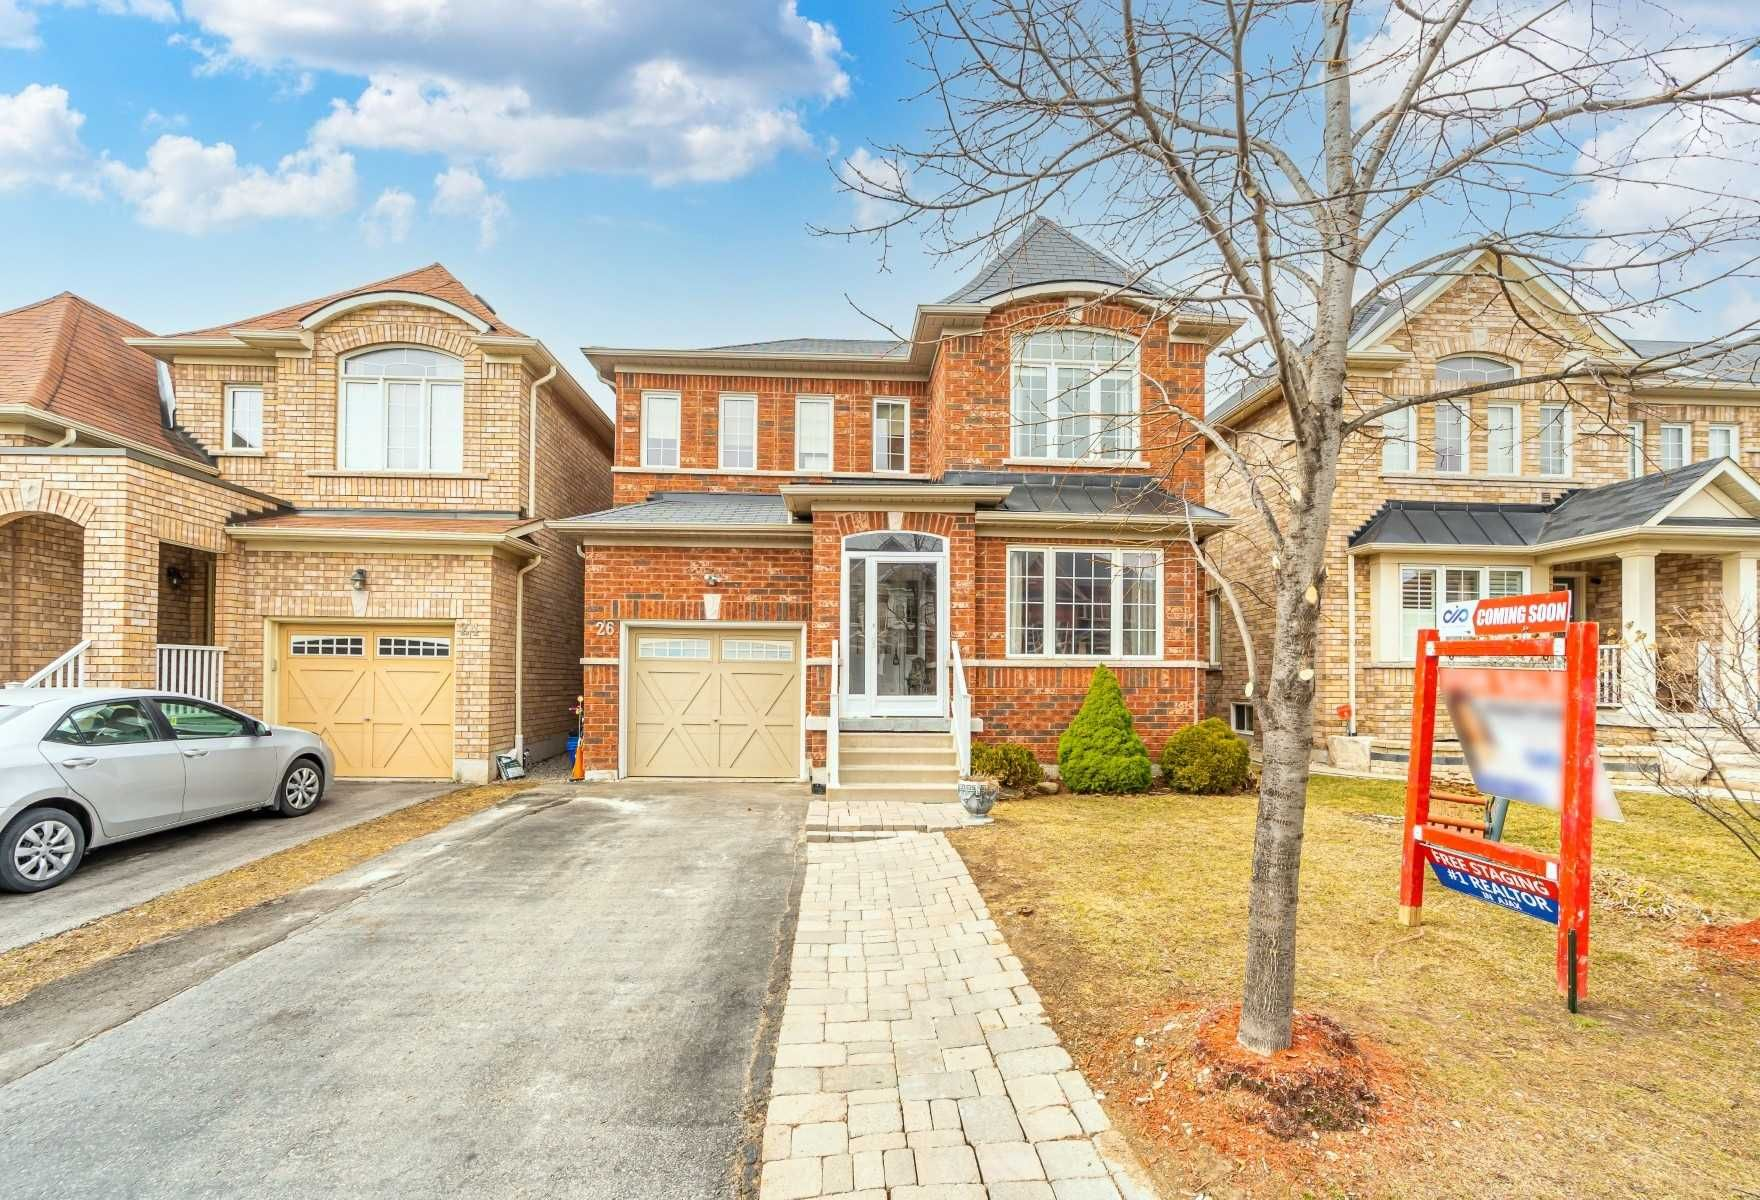 Main Photo: 26 Watersplace Avenue in Ajax: Northeast Ajax House (2-Storey) for sale : MLS®# E5166954